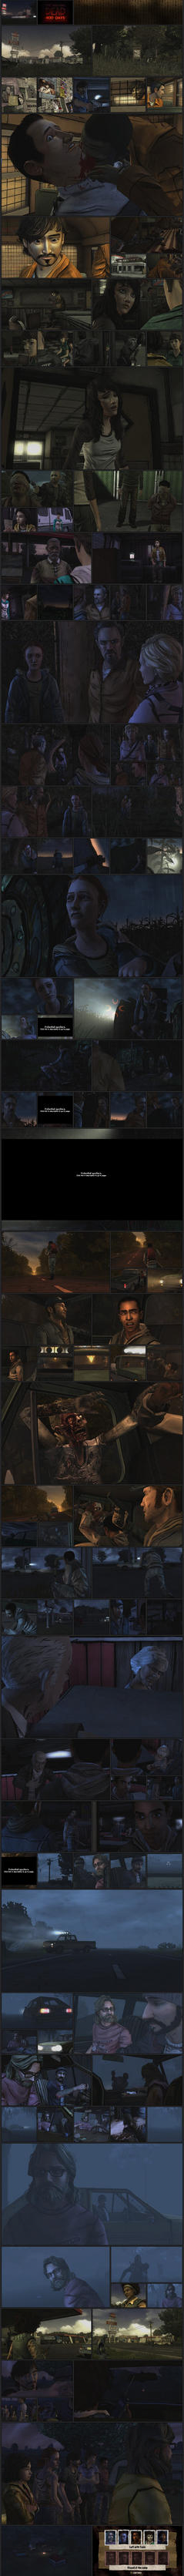 The Walking Dead - 400 Days - Screenshot Summary. by Sklarlight